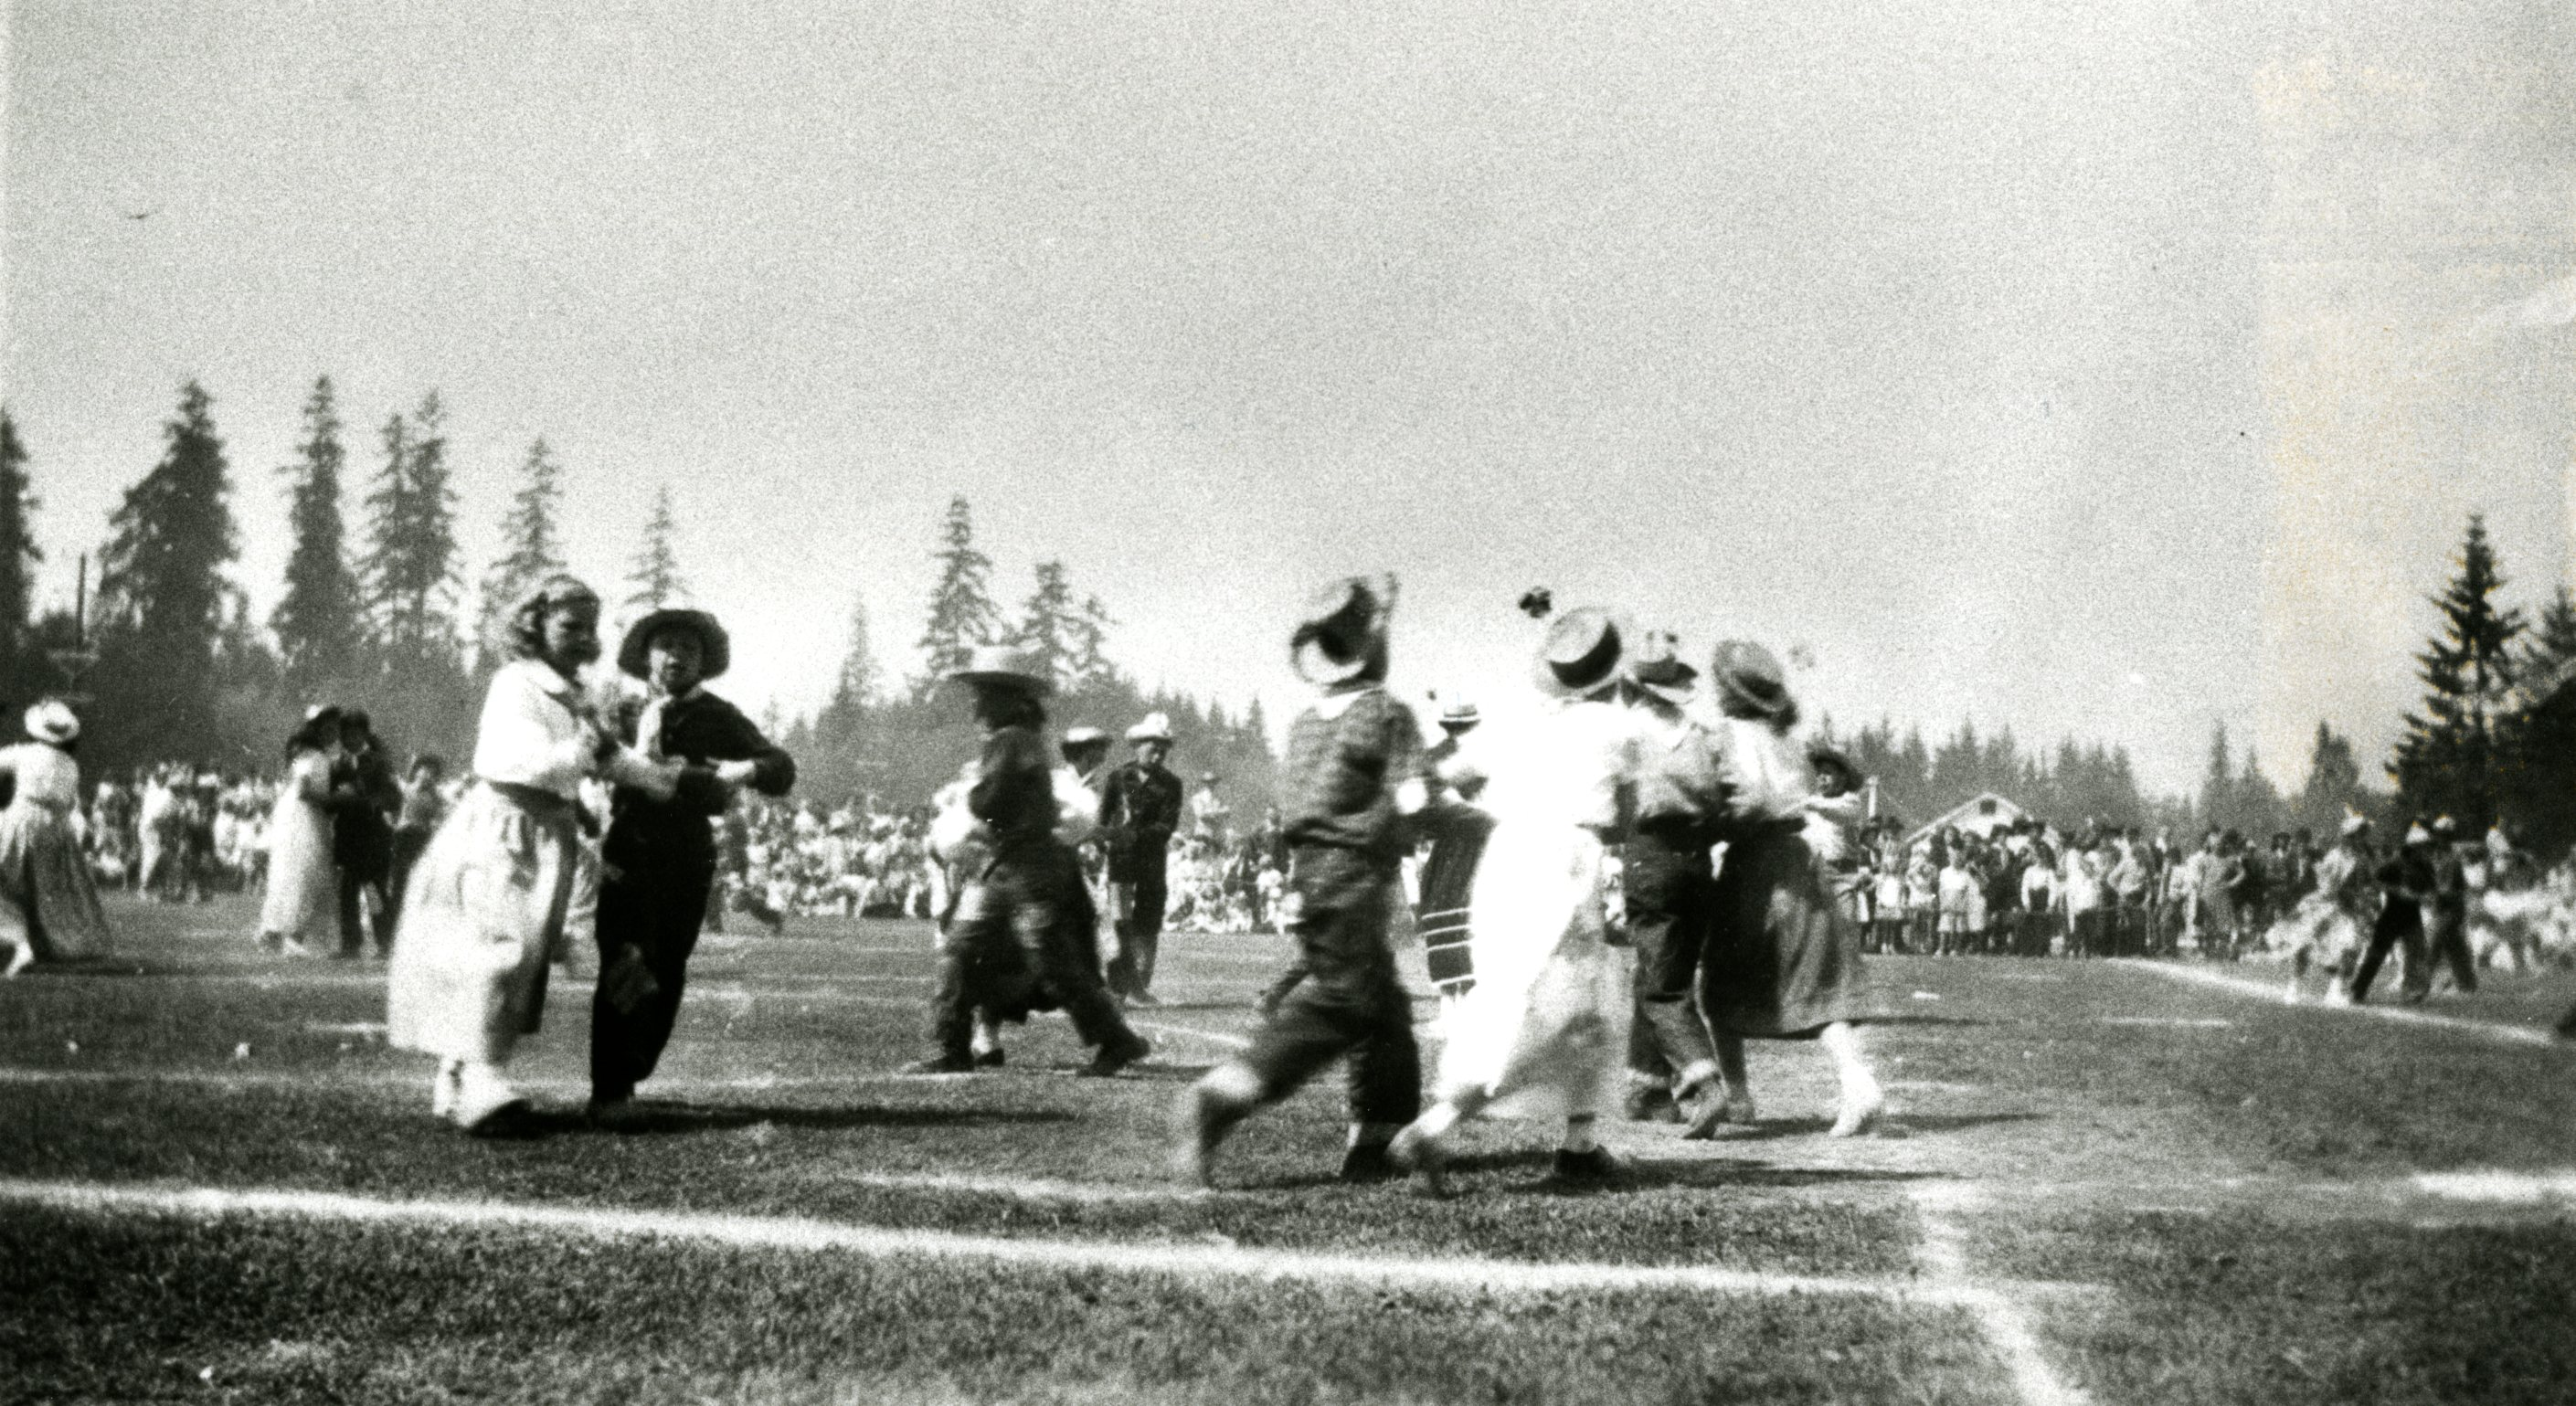 Children Dancing at the May Day Celebrations at Blue Mountain Park, 1940s (JPG) Opens in new window